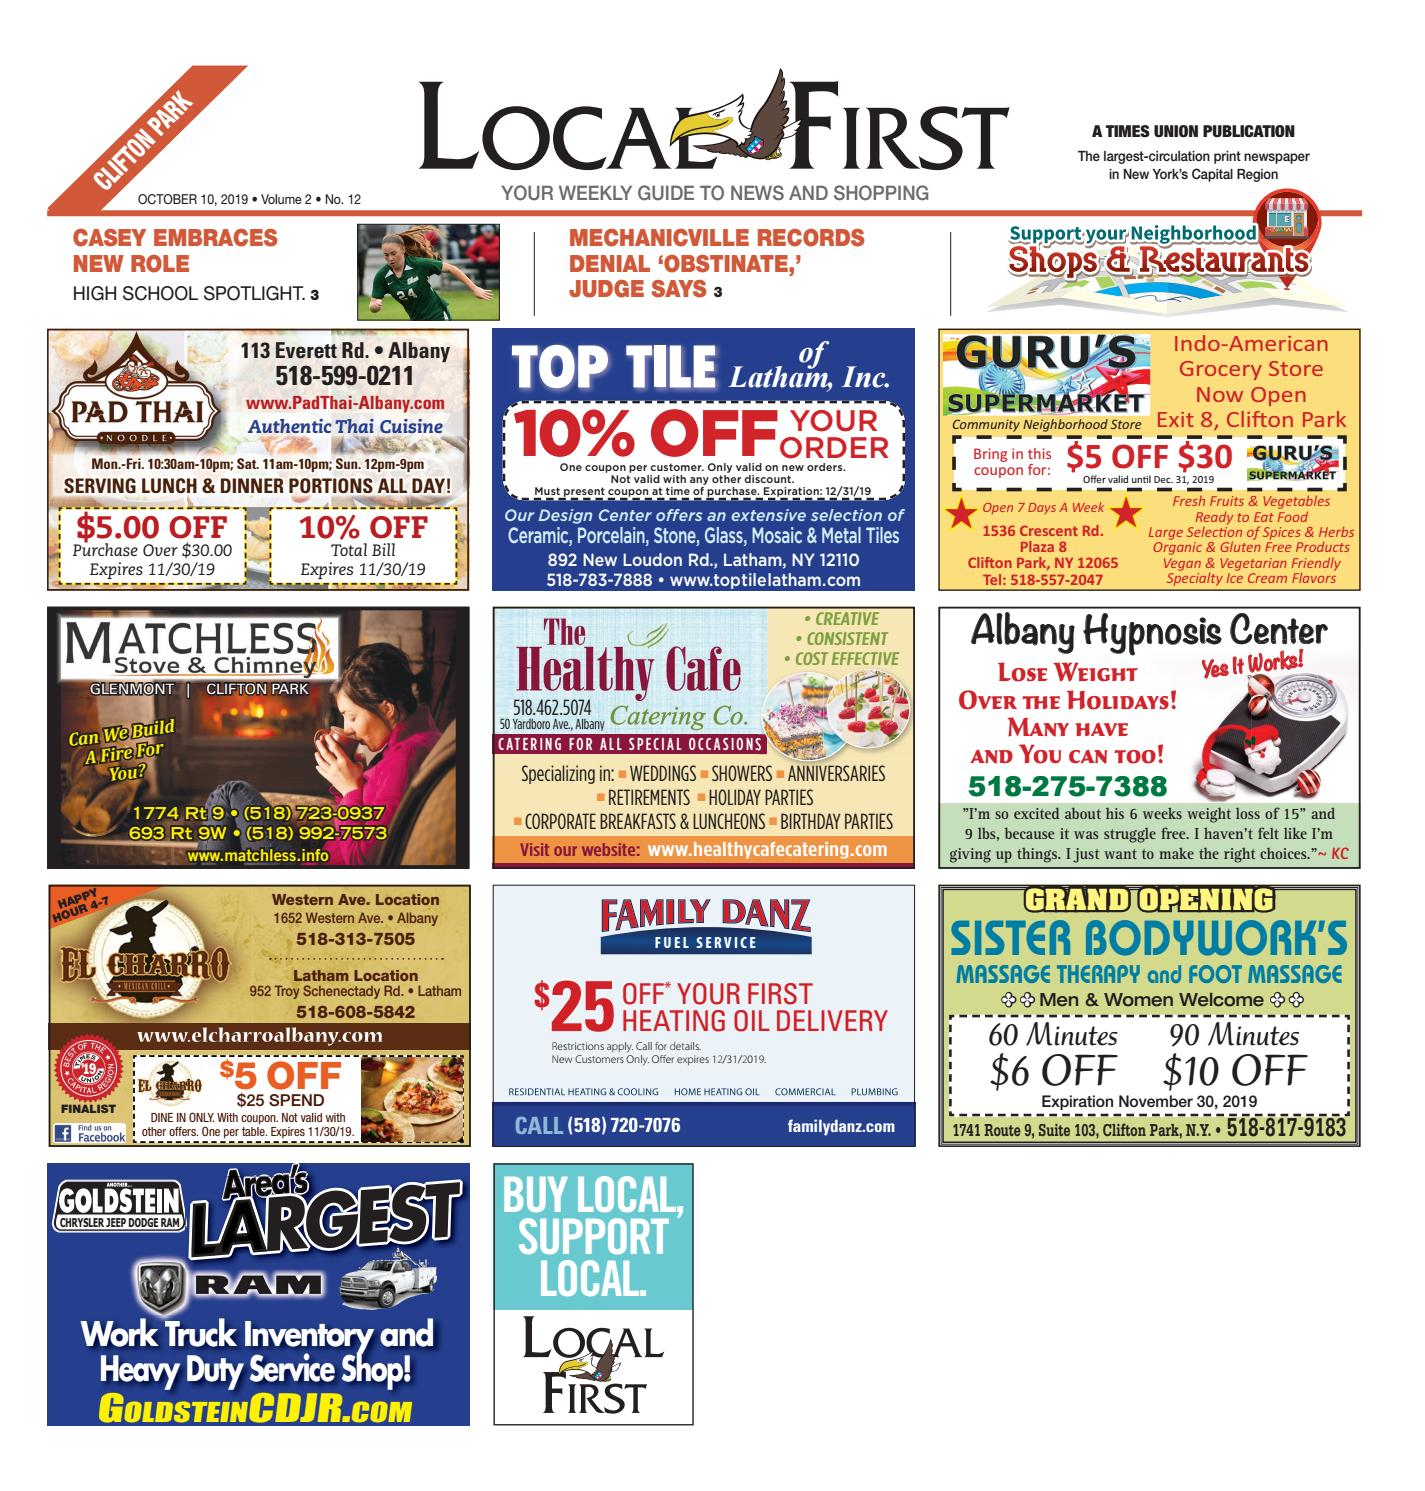 Local First Clifton Park 101019 By Capital Region Weekly Newspapers Issuu If you are not satisfied with twist.moe's availability or services, please, feel free to join the discussion. issuu